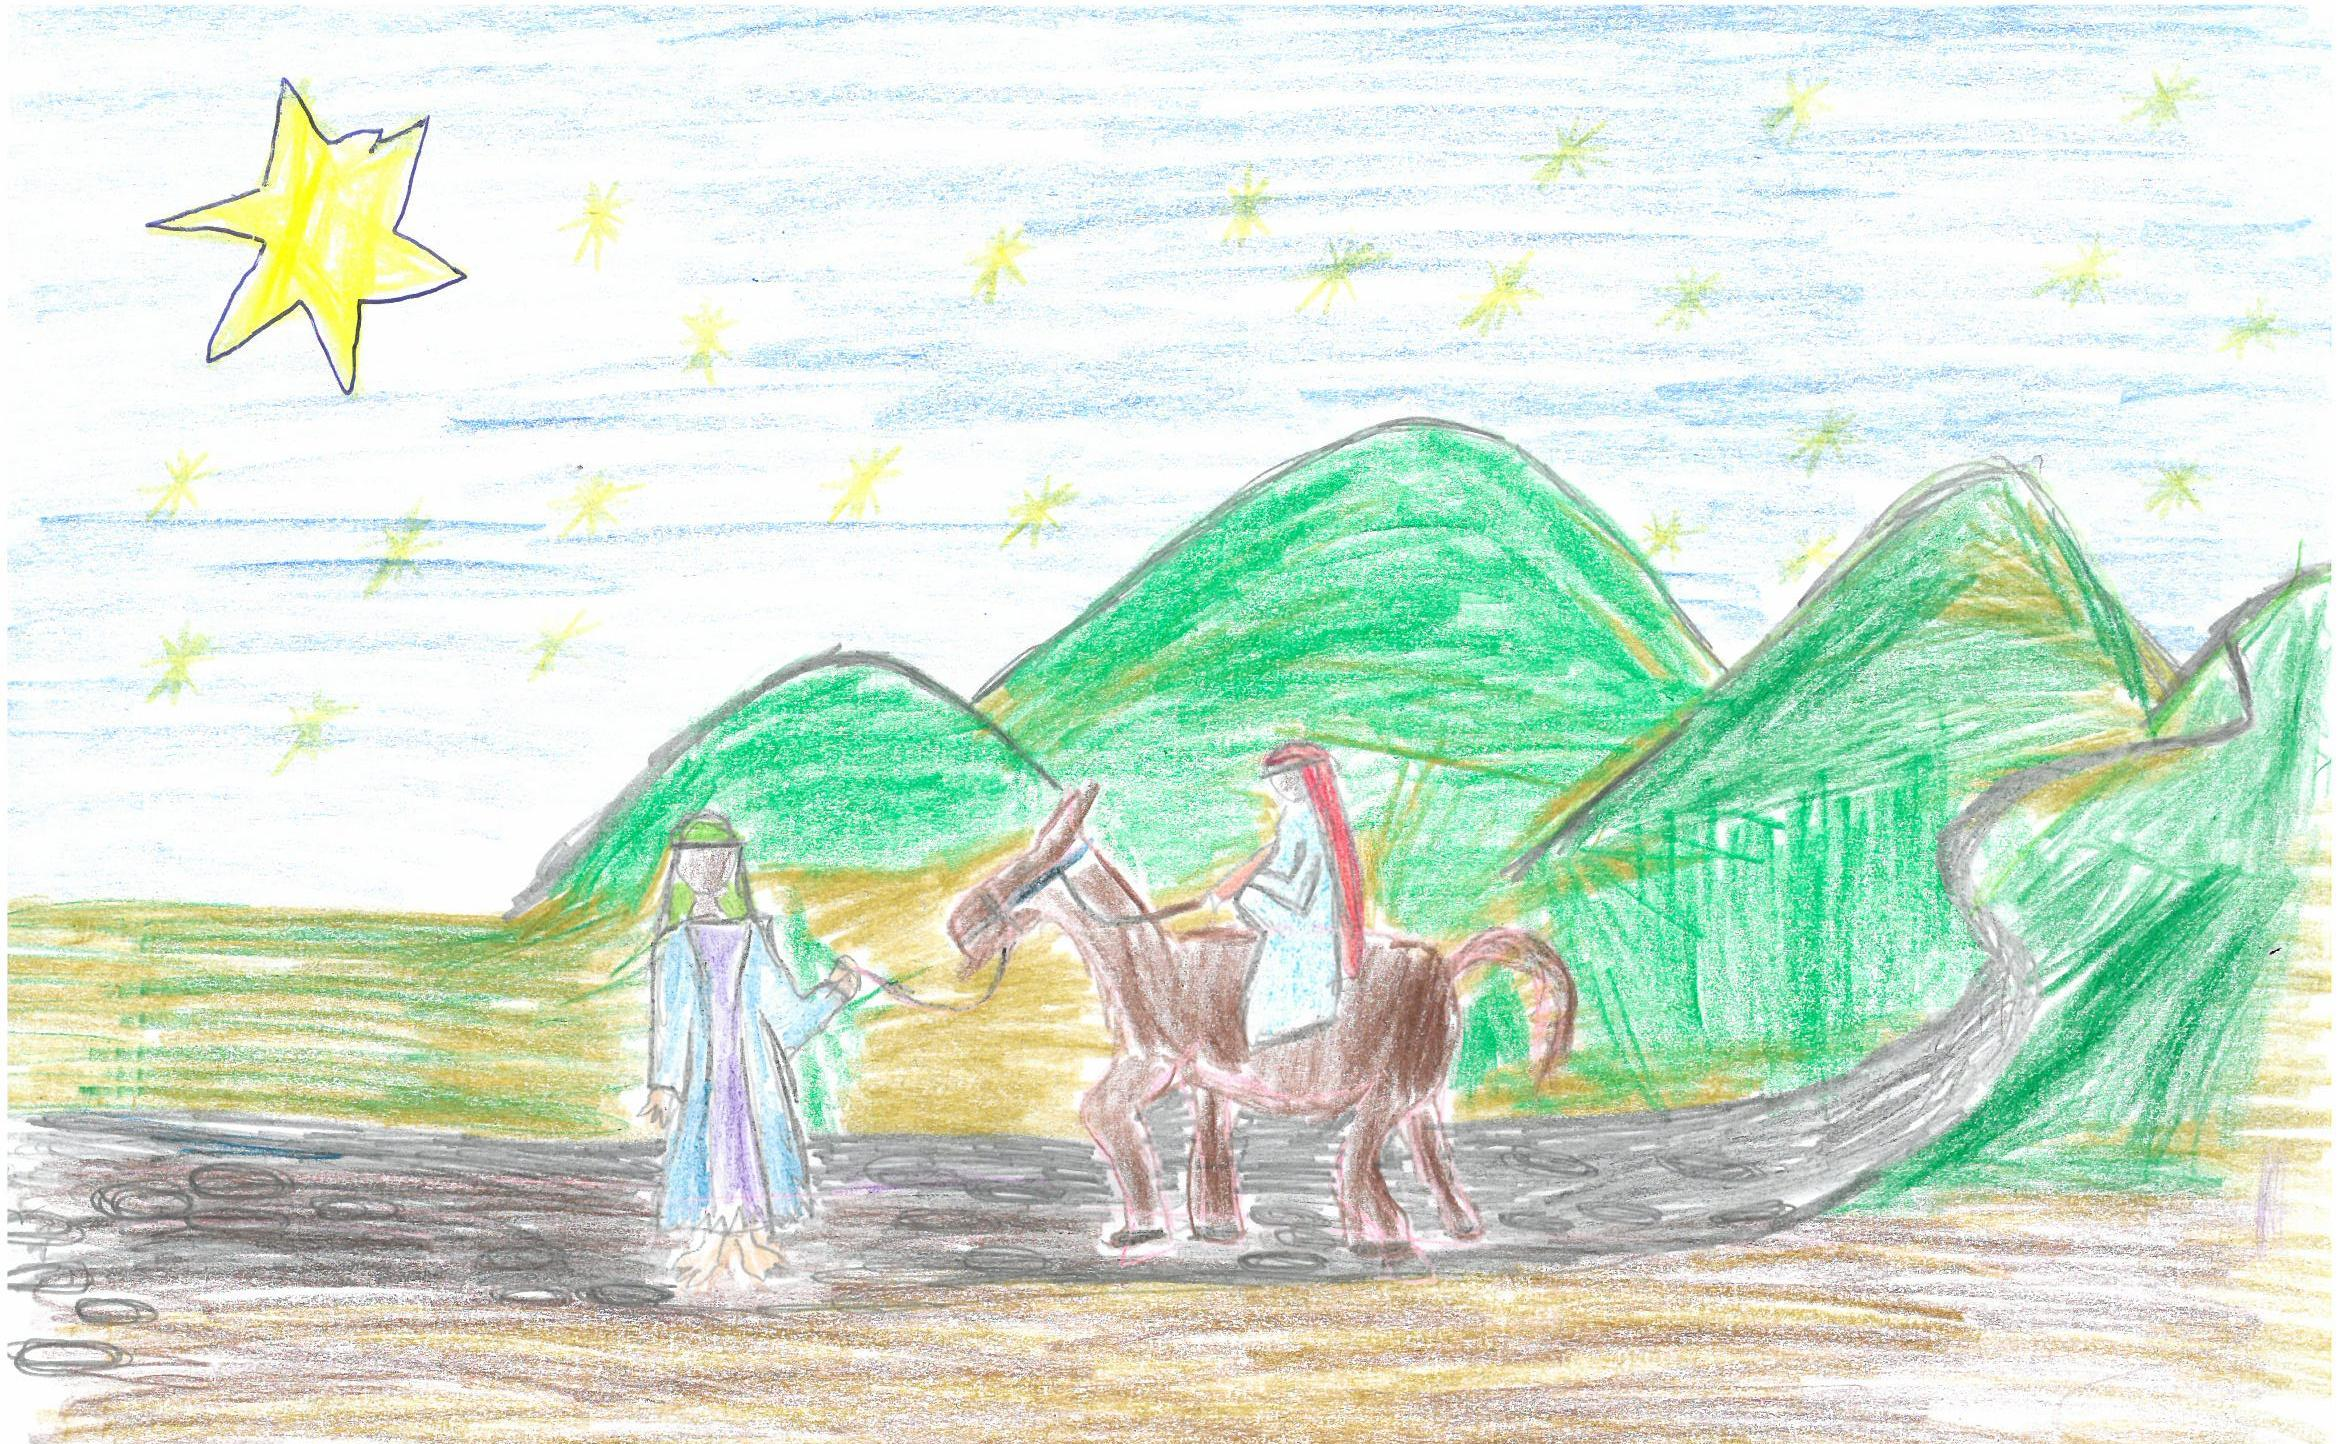 Copy of Christmas 2013 by Tom Long aged 7 from Dunboyne, Co Meath